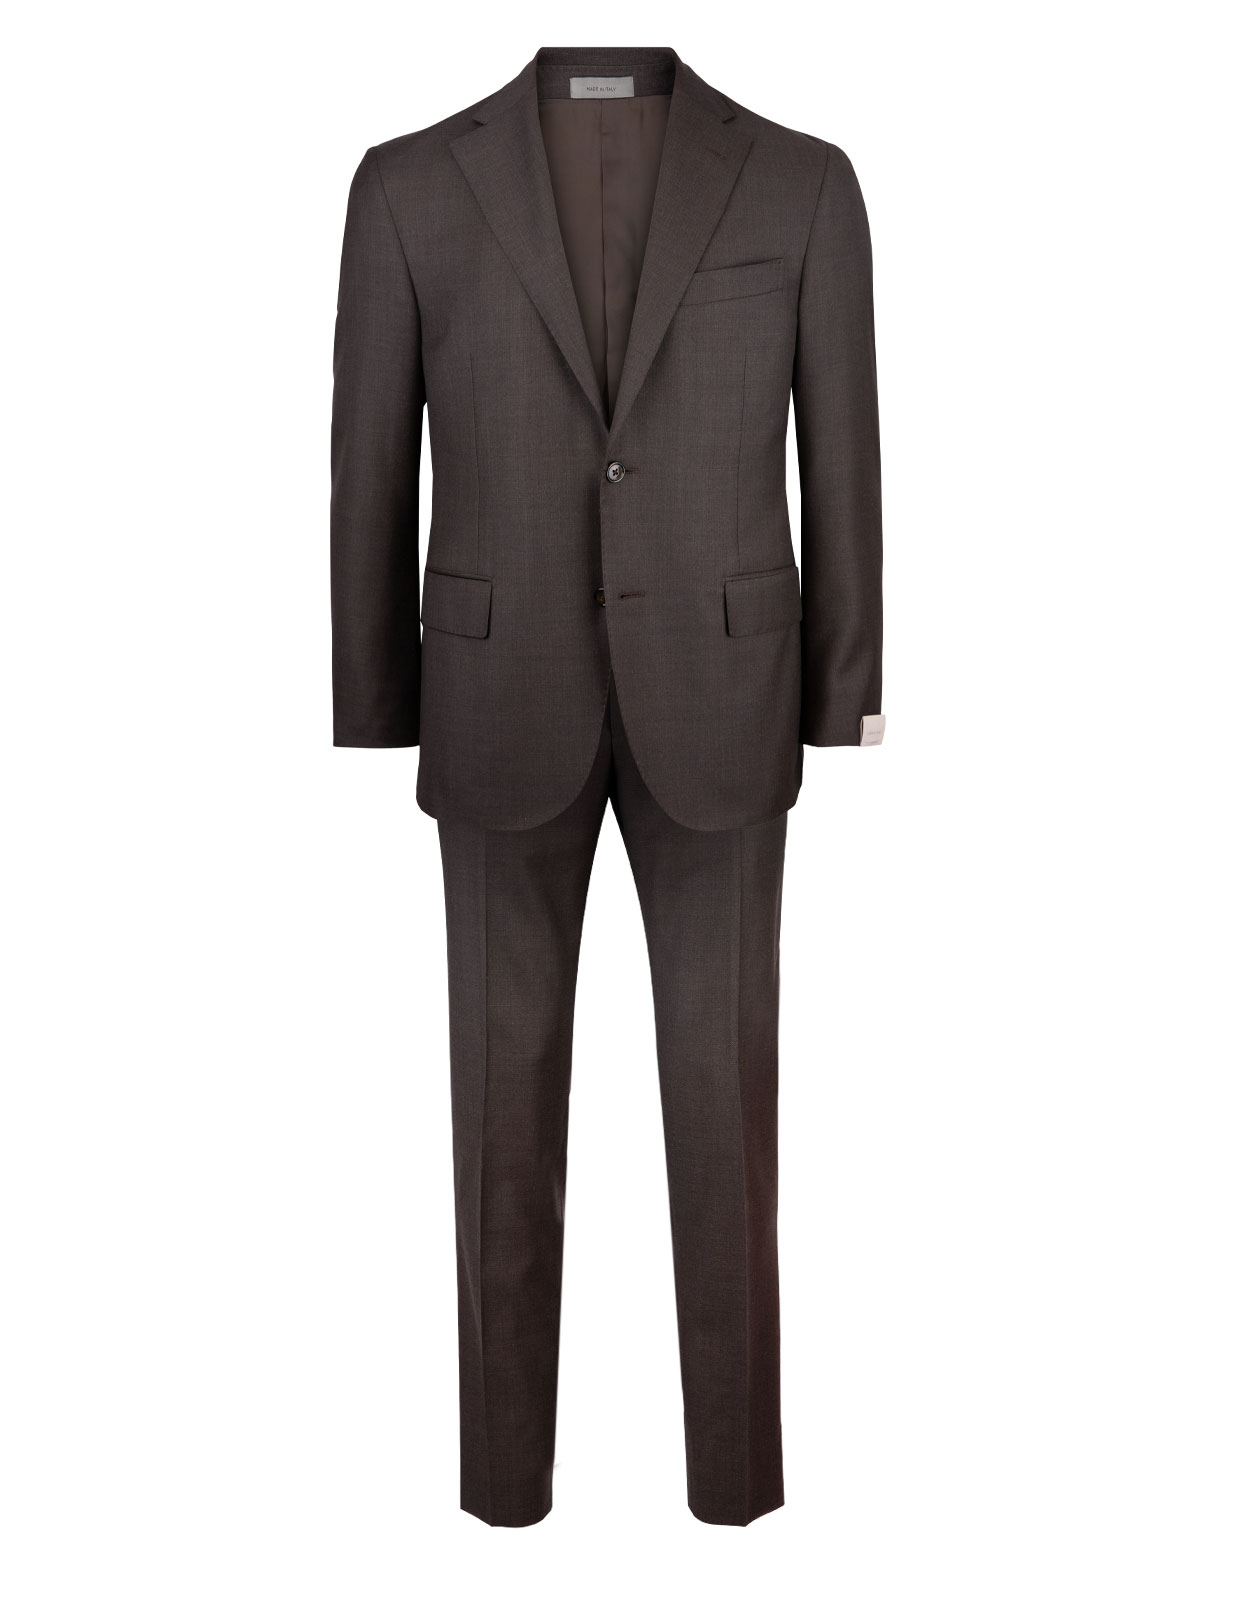 Academy Soft 7296 Wool Suit Brown